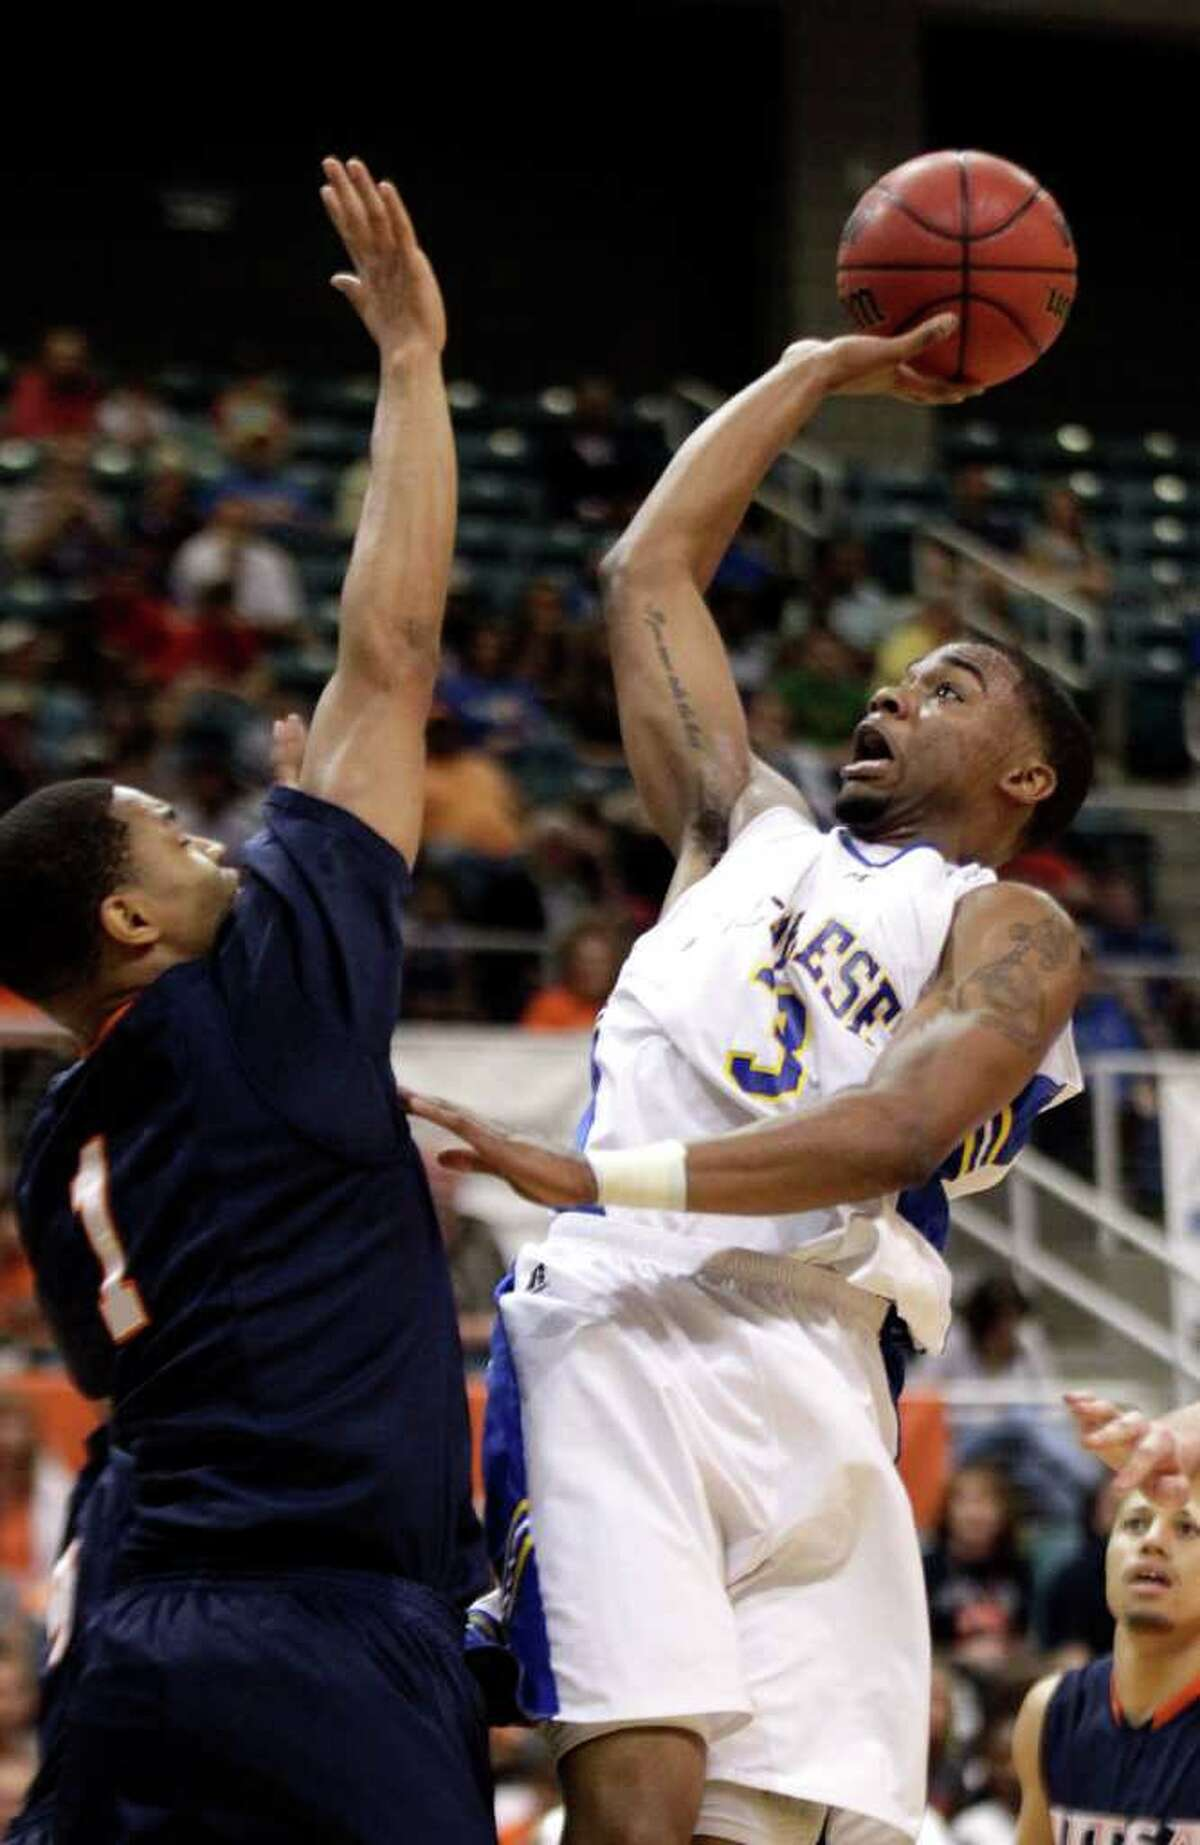 McNeese State's Patrick Richard shoots as UTSA's Stephen Franklin defends during the first half of the Southland Conference tournament championship on Saturday, March 12, 2011, in Katy. UTSA won 75-72.